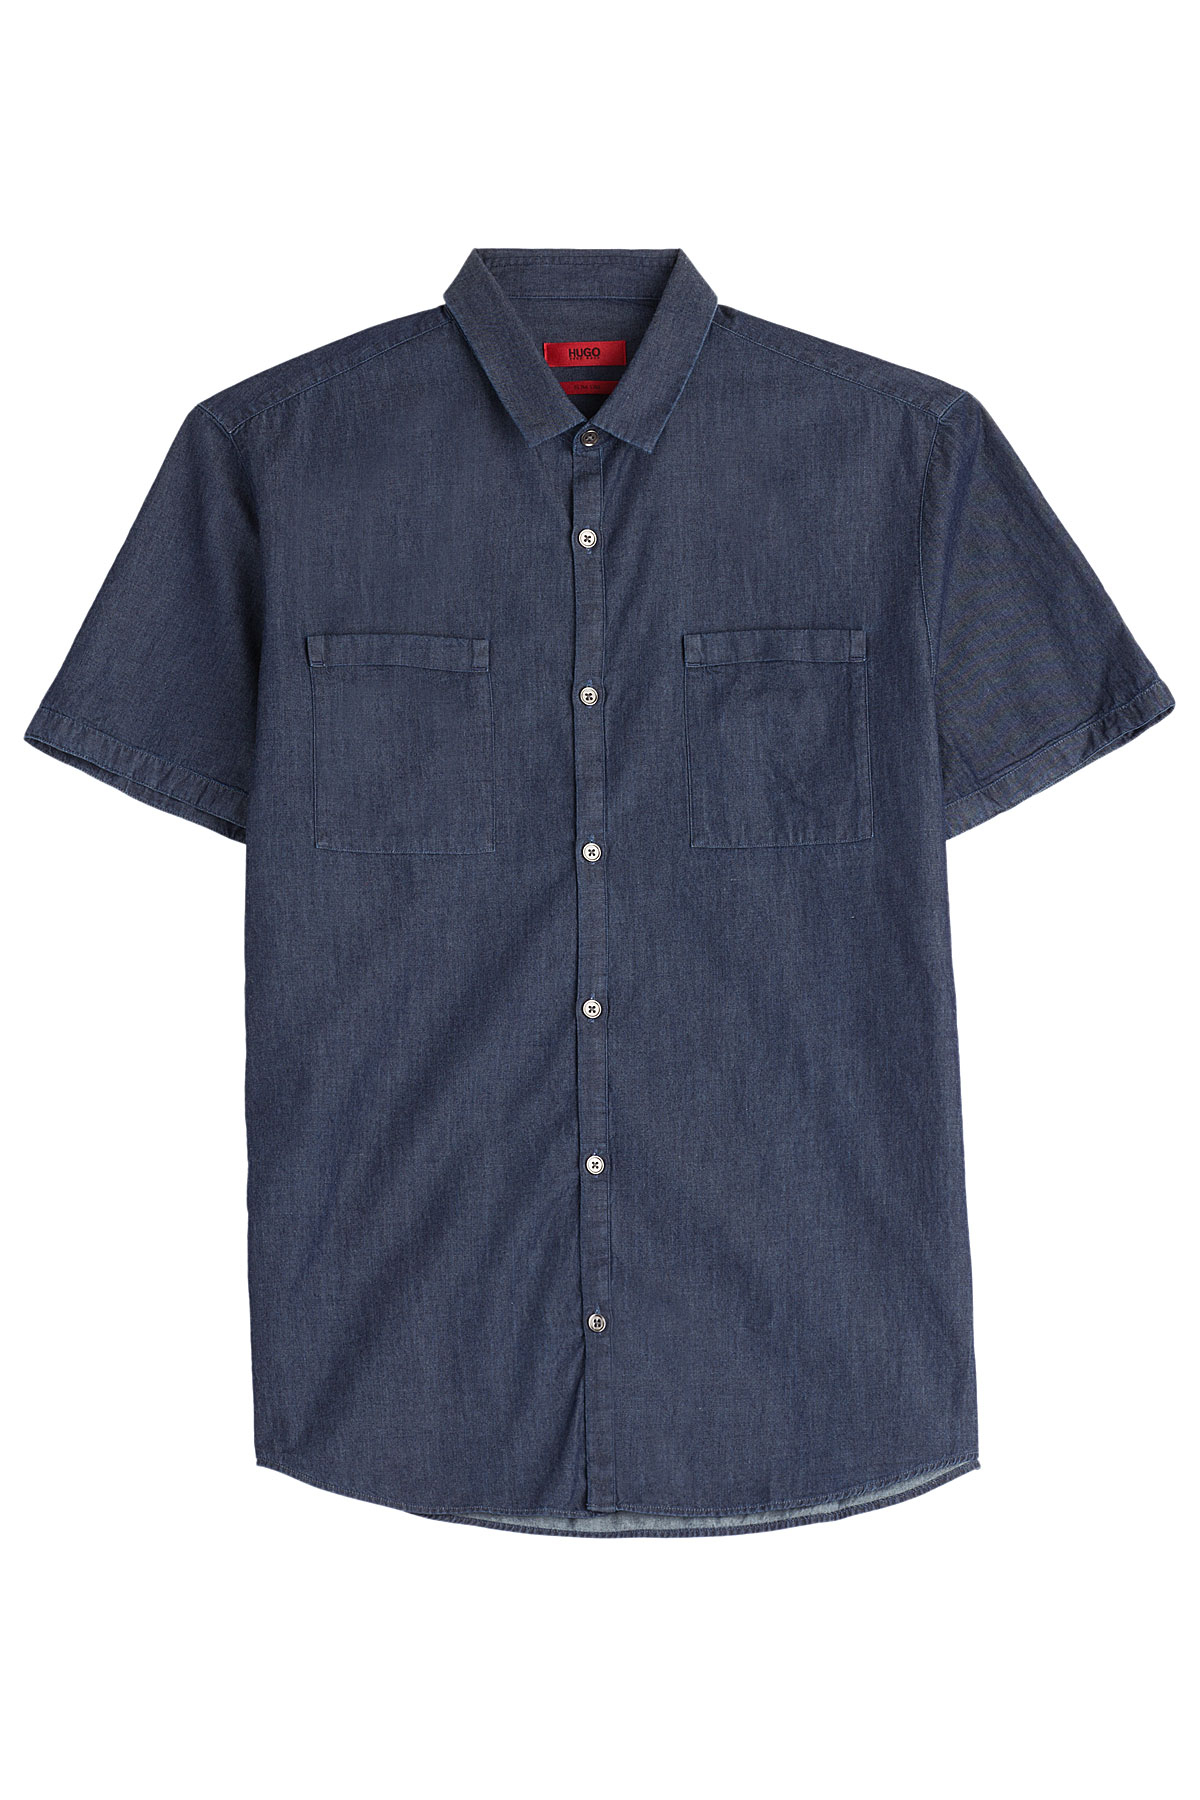 Short Sleeve Casual Button-Down Shirts. Narrow by Brand. Tommy Bahama. Quiksilver. INC International Concepts. Tommy Hilfiger. Cubavera. Alfani. Polo Ralph Lauren. See More. American Rag Men's Slim-Fit Denim Shirt, Created for Macy's LAST ACT $